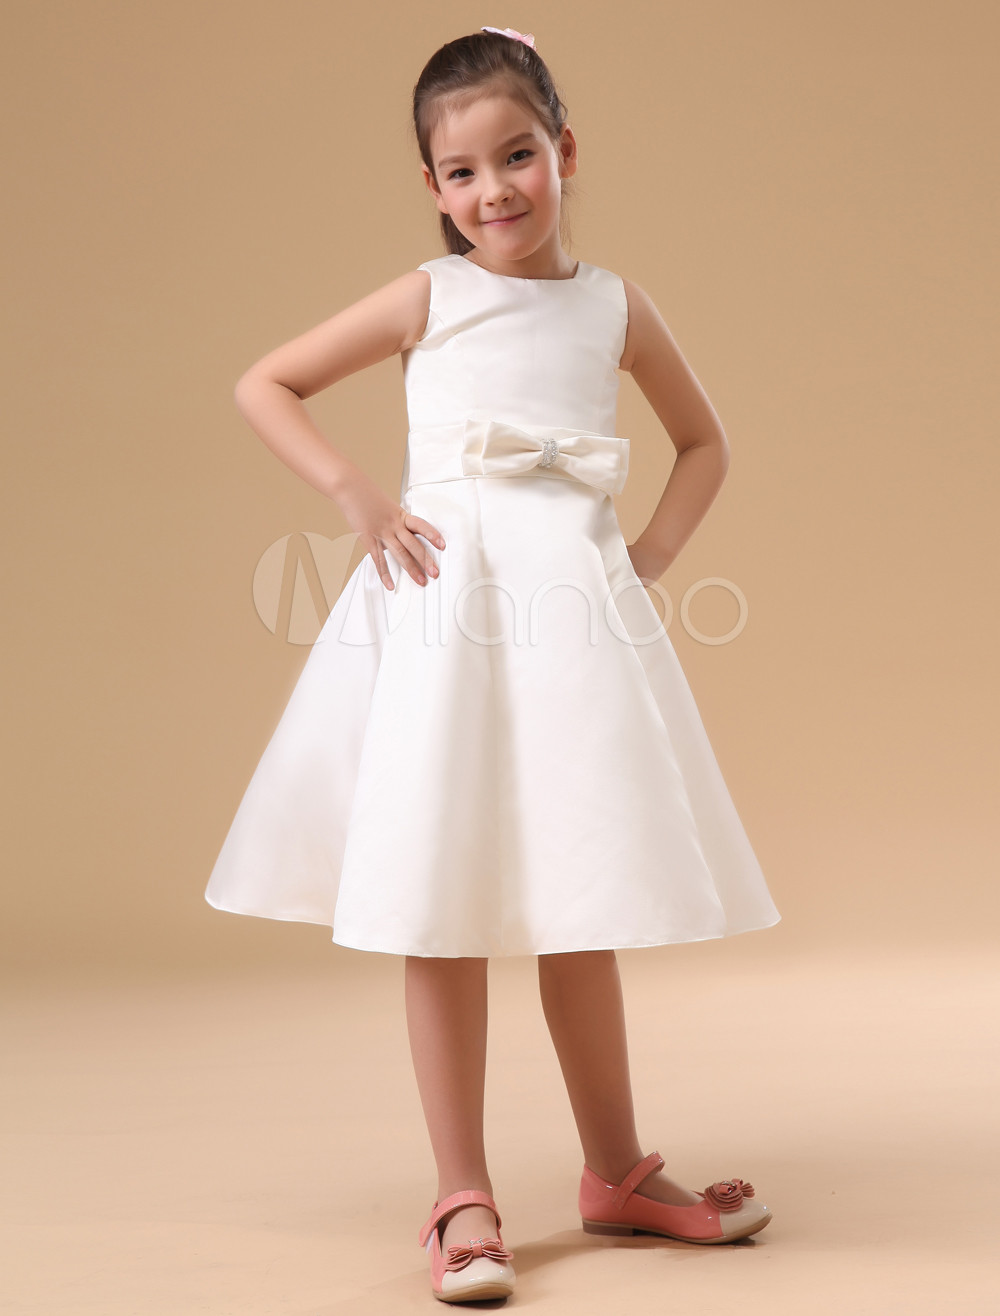 A-Line Flower Girls Dresses For Wedding Gowns Mid-Calf Mother Daughter Dresses With Bow Glitz Pageant Dresses for Little Girls custom champagne beaded a line flower girl dresses beautiful mother and daughter glitz gowns for wedding pageant party occasion